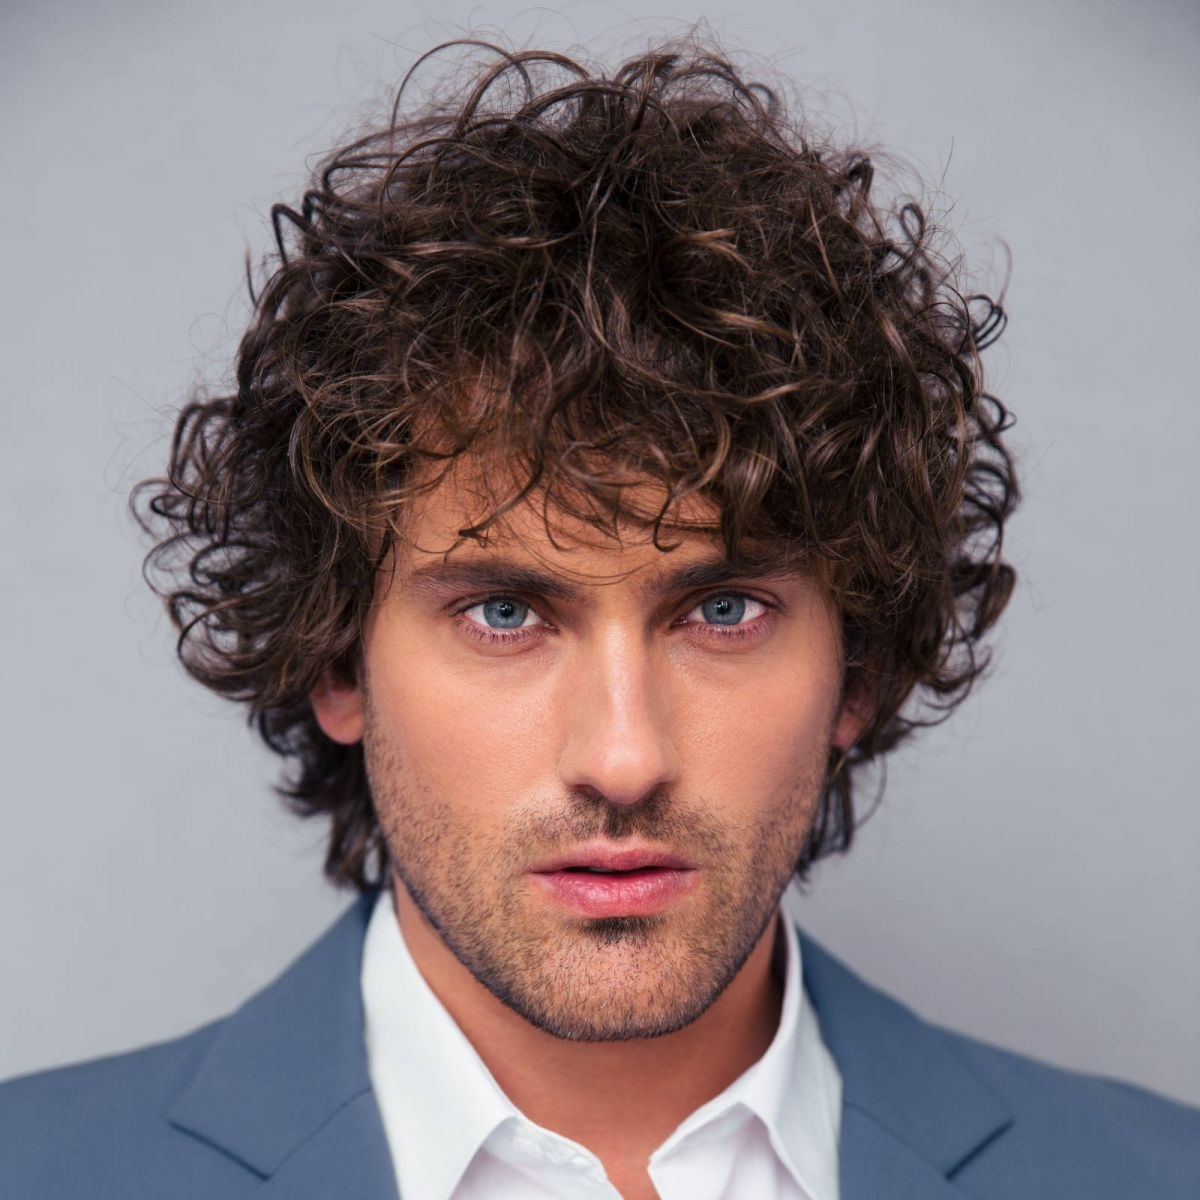 40 Modern Men's Hairstyles For Curly Hair (That Will Change Your Look) regarding Haircuts For Guys With Curly Hair